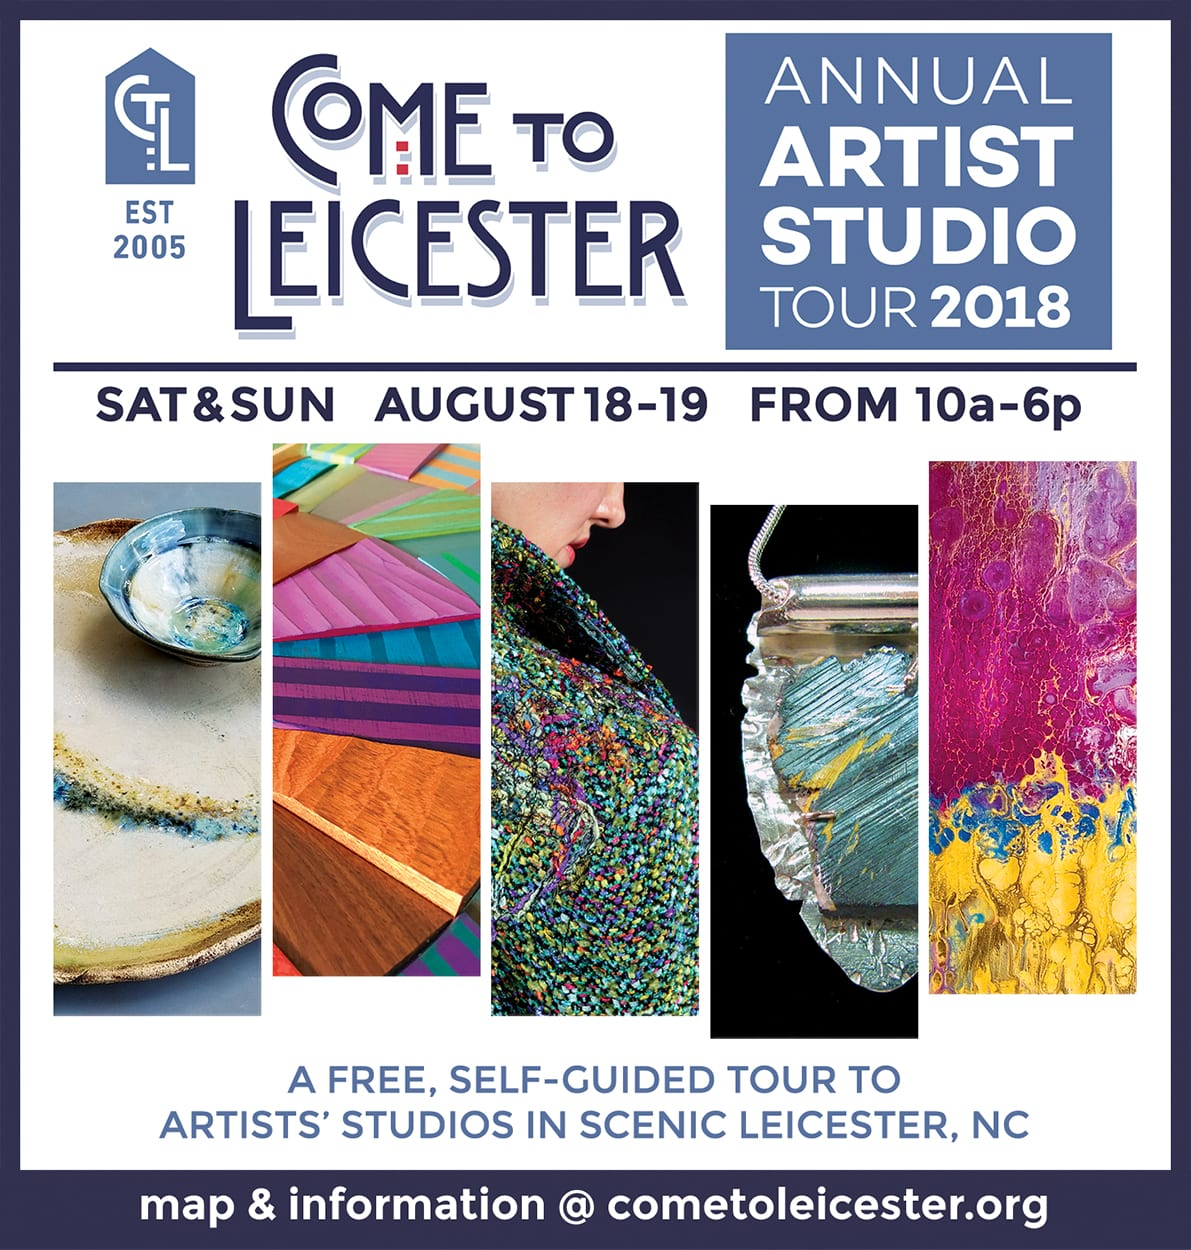 Come to Leicester Annual Artist Studio Tour!  August 18-19, 10-6pm